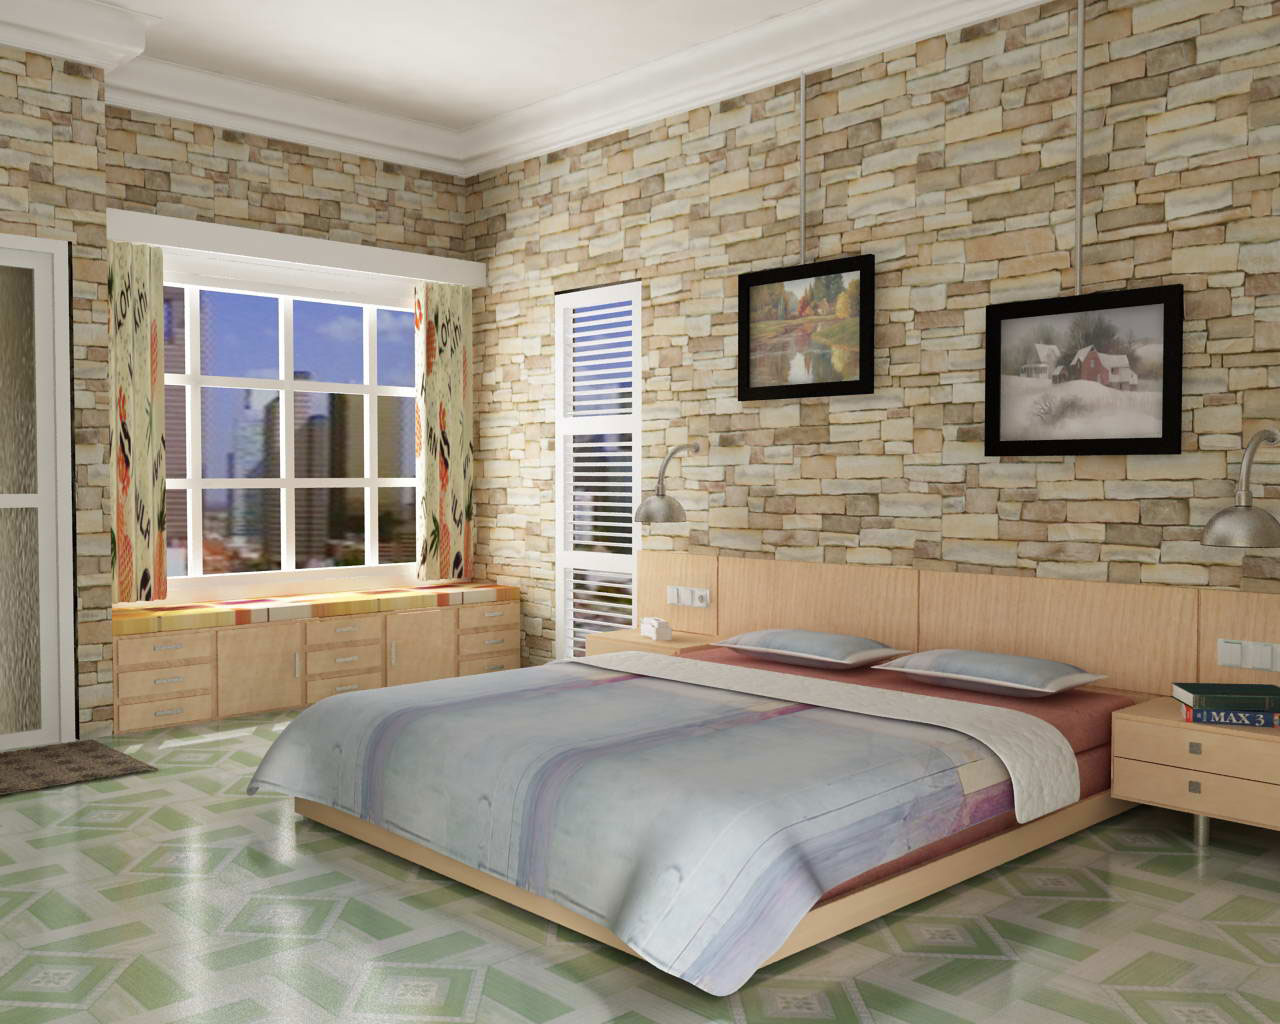 contemporary-bedroom-design-with-natural-stone-wall-decor-be-equipped-large-glass-window-with-white-wooden-frame-plus-green-ceramic-floors-under-smooth-sanded-cherry-wood-bed-frame-which-has-salmon-ki